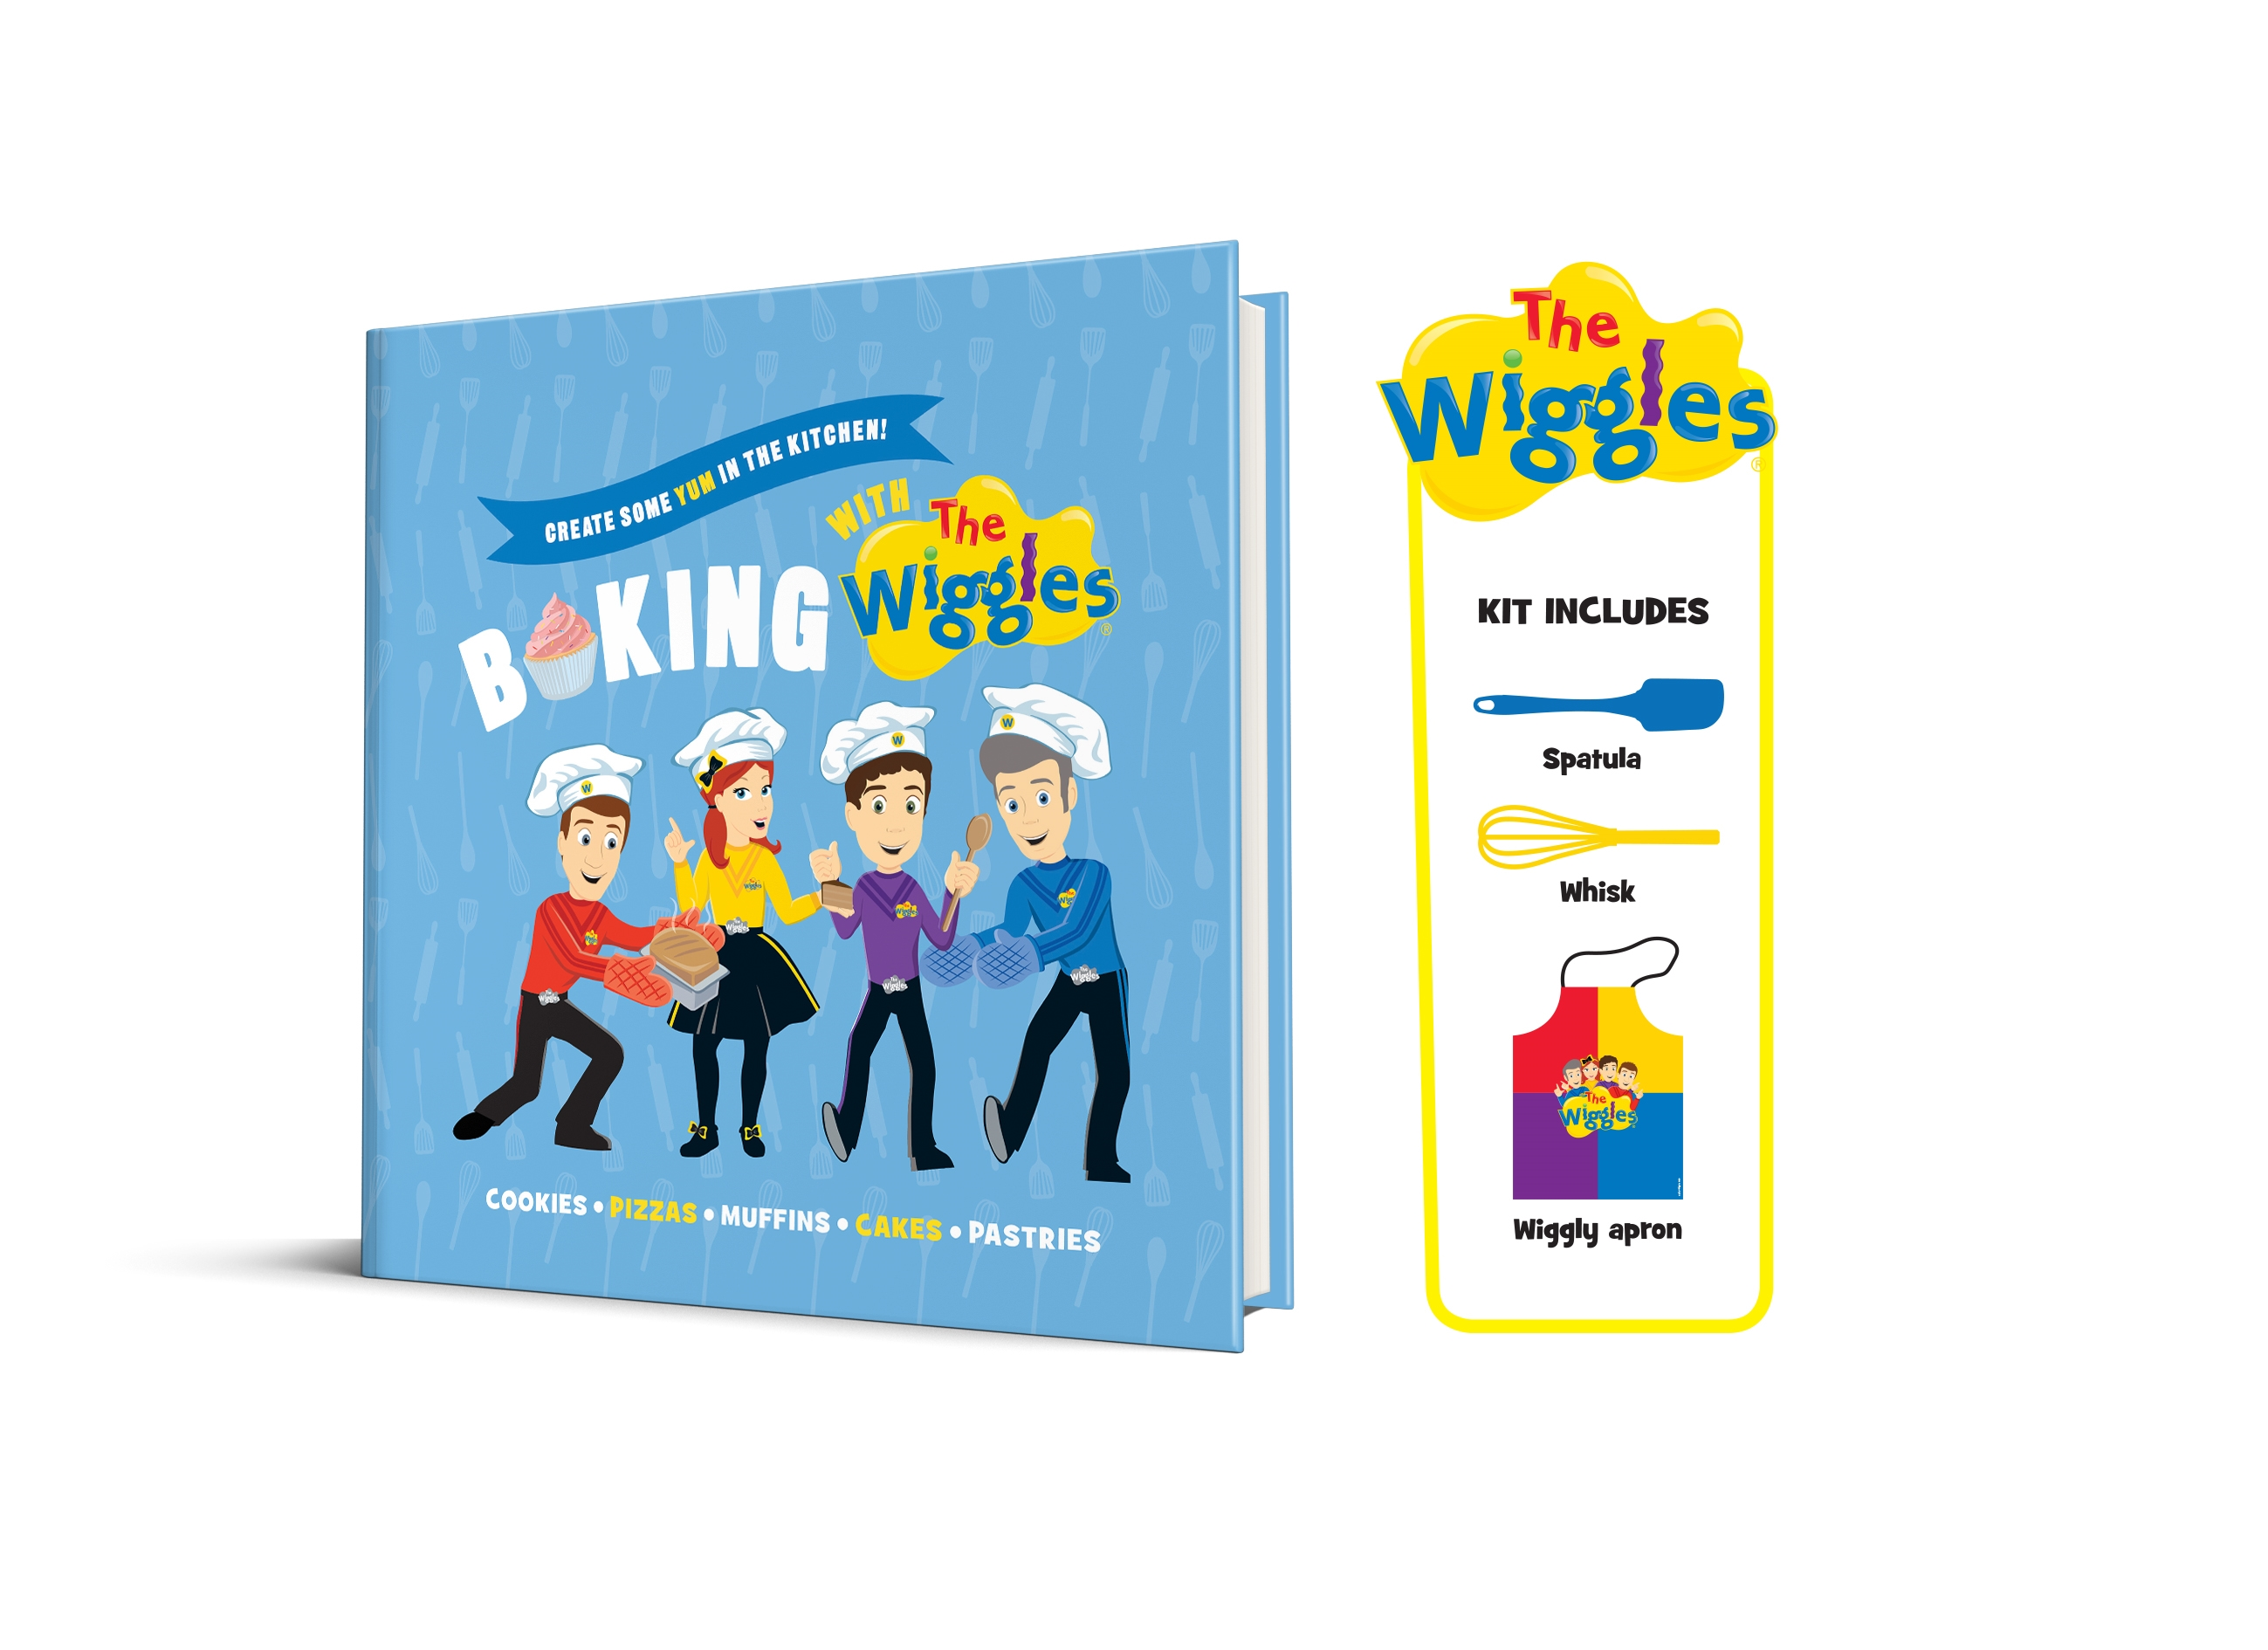 Baking with The Wiggles Boxed Set